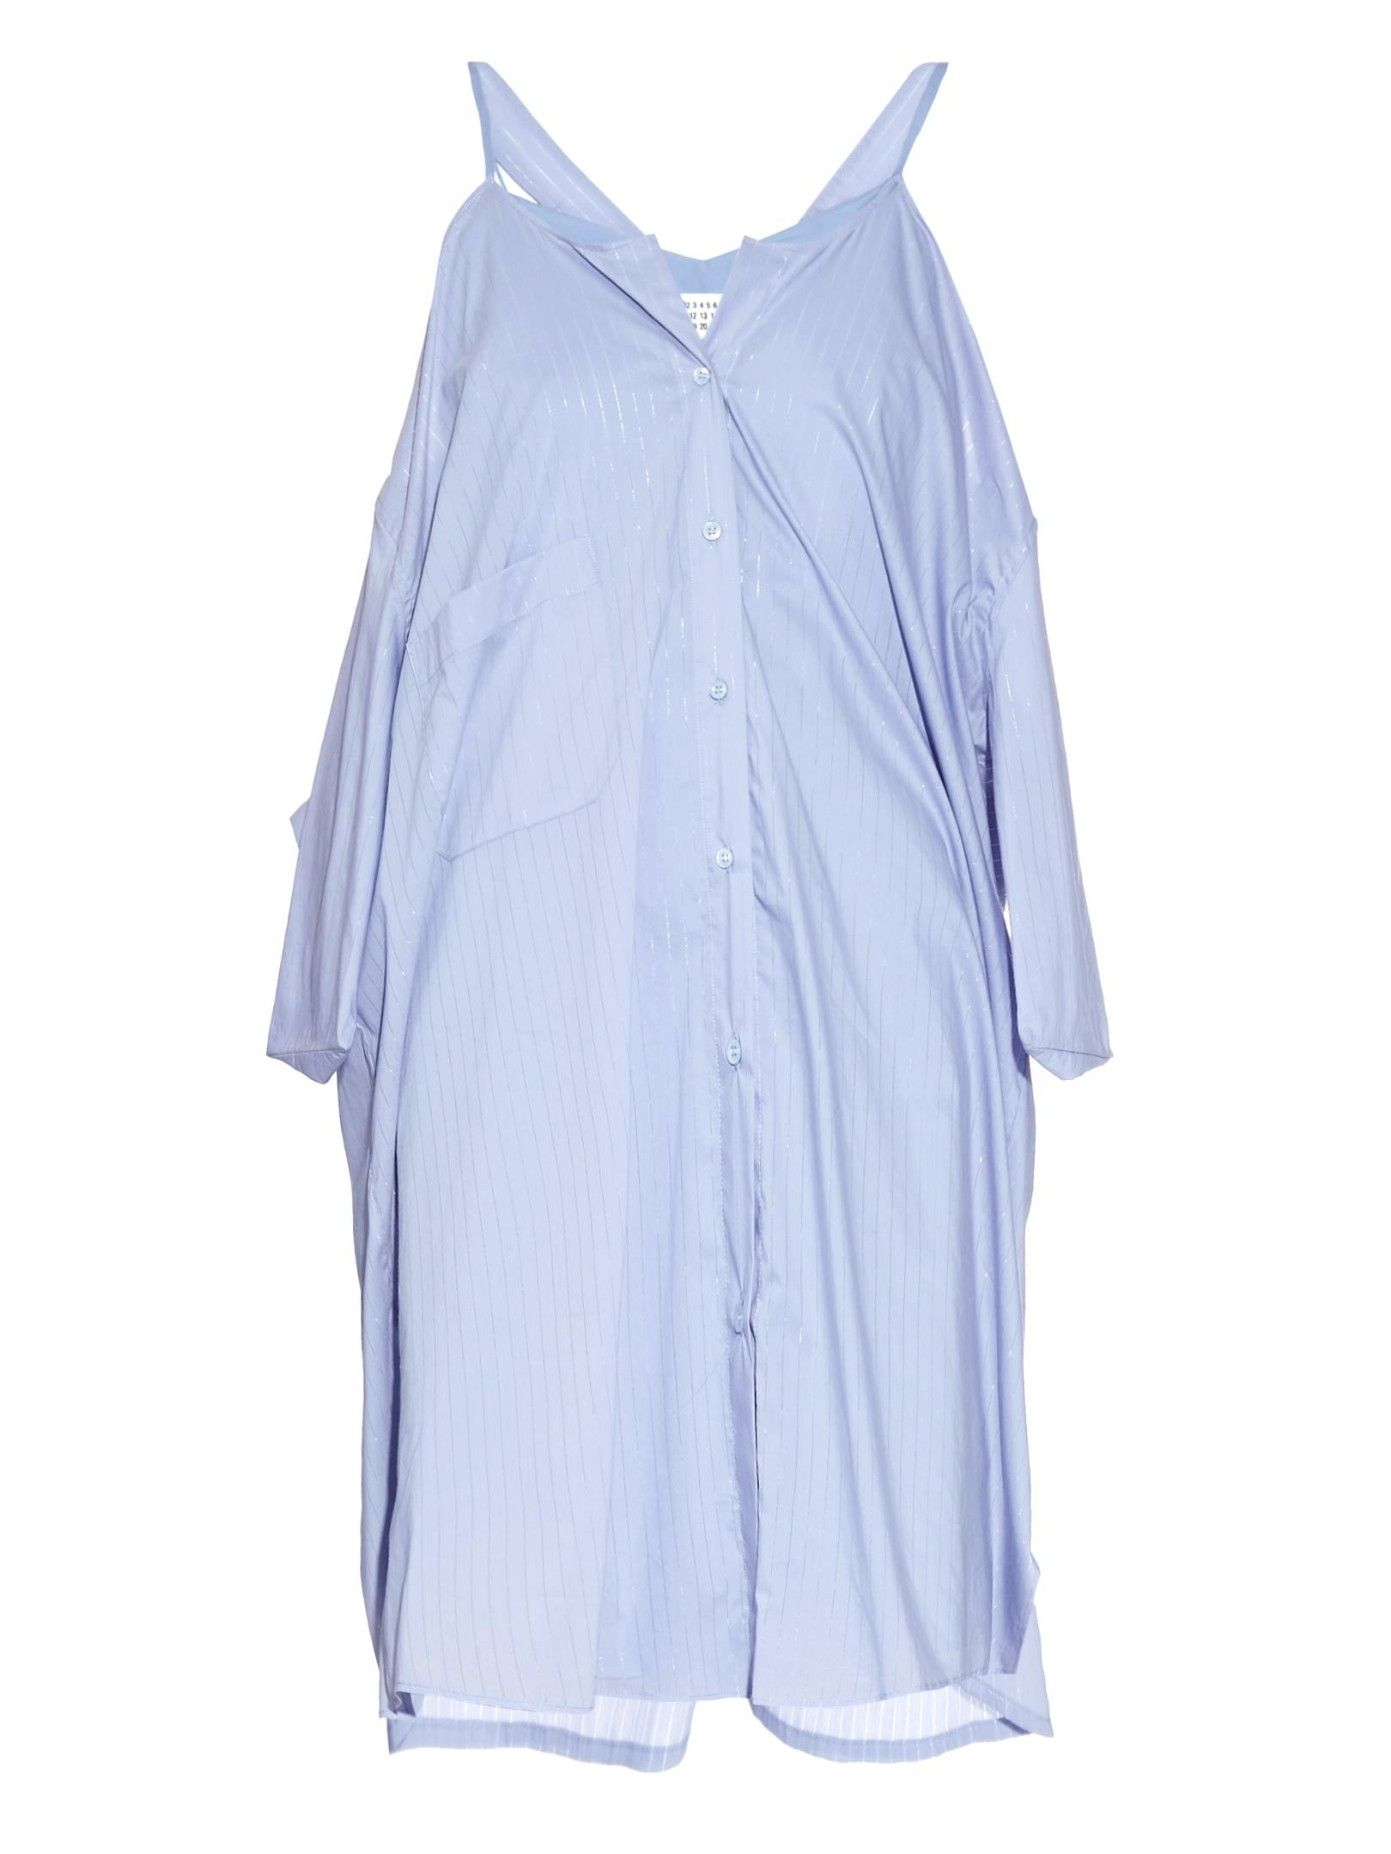 Wing-panel cotton-blend shirtdress | Maison Margiela | MATCHESFASHION.COM US